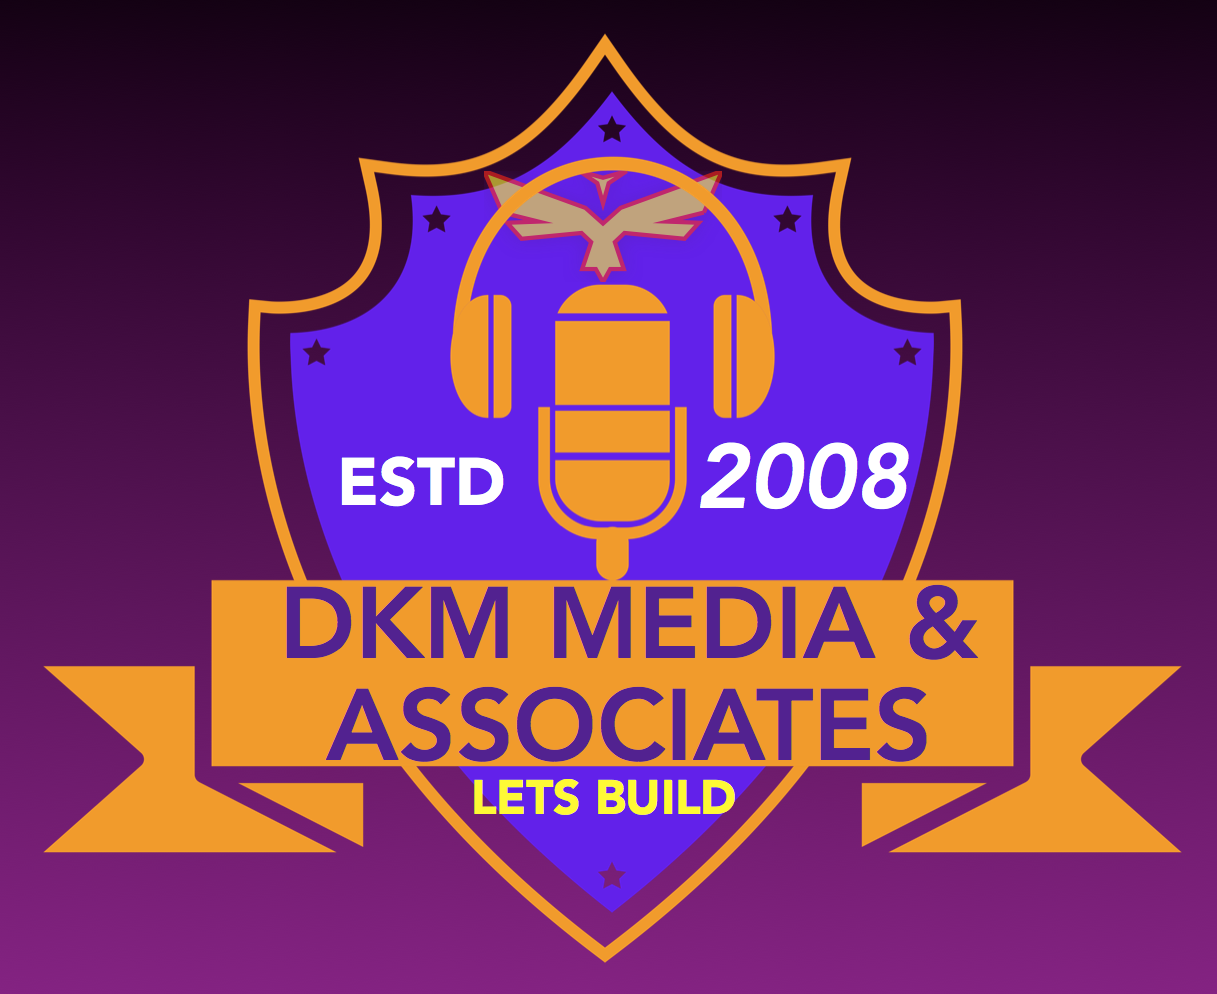 DKM Media Group & Associates